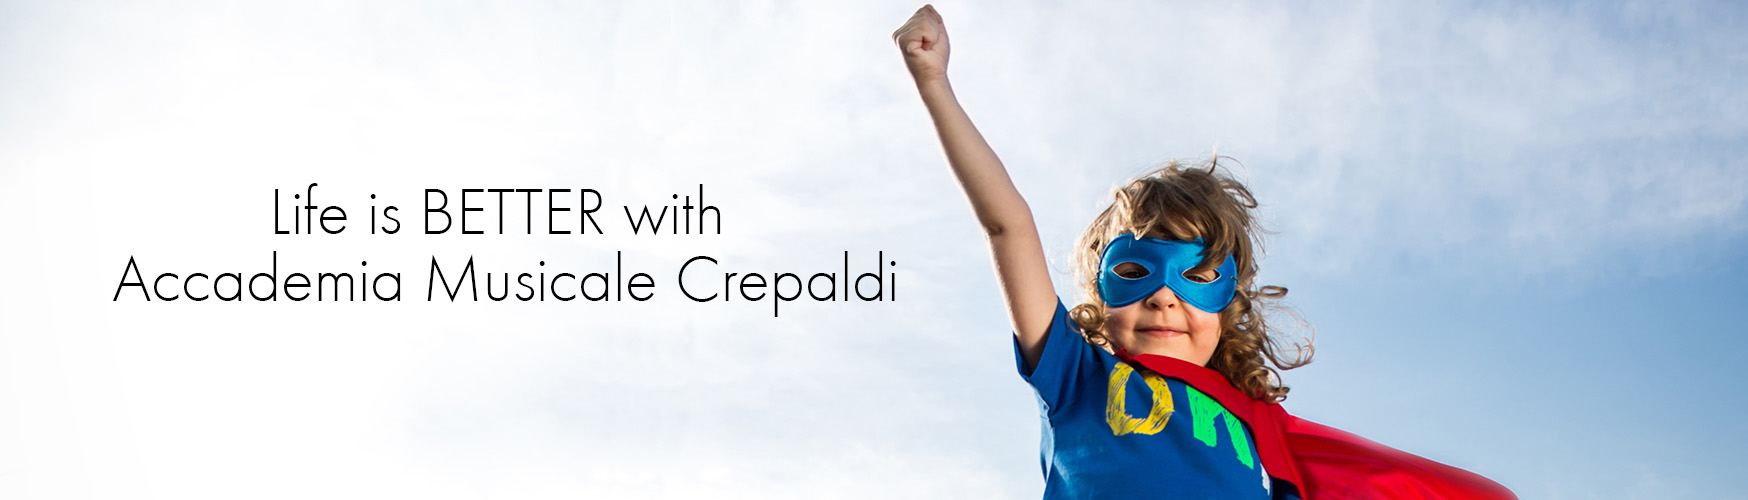 Life is BETTER with Accademia Musicale Crepaldi